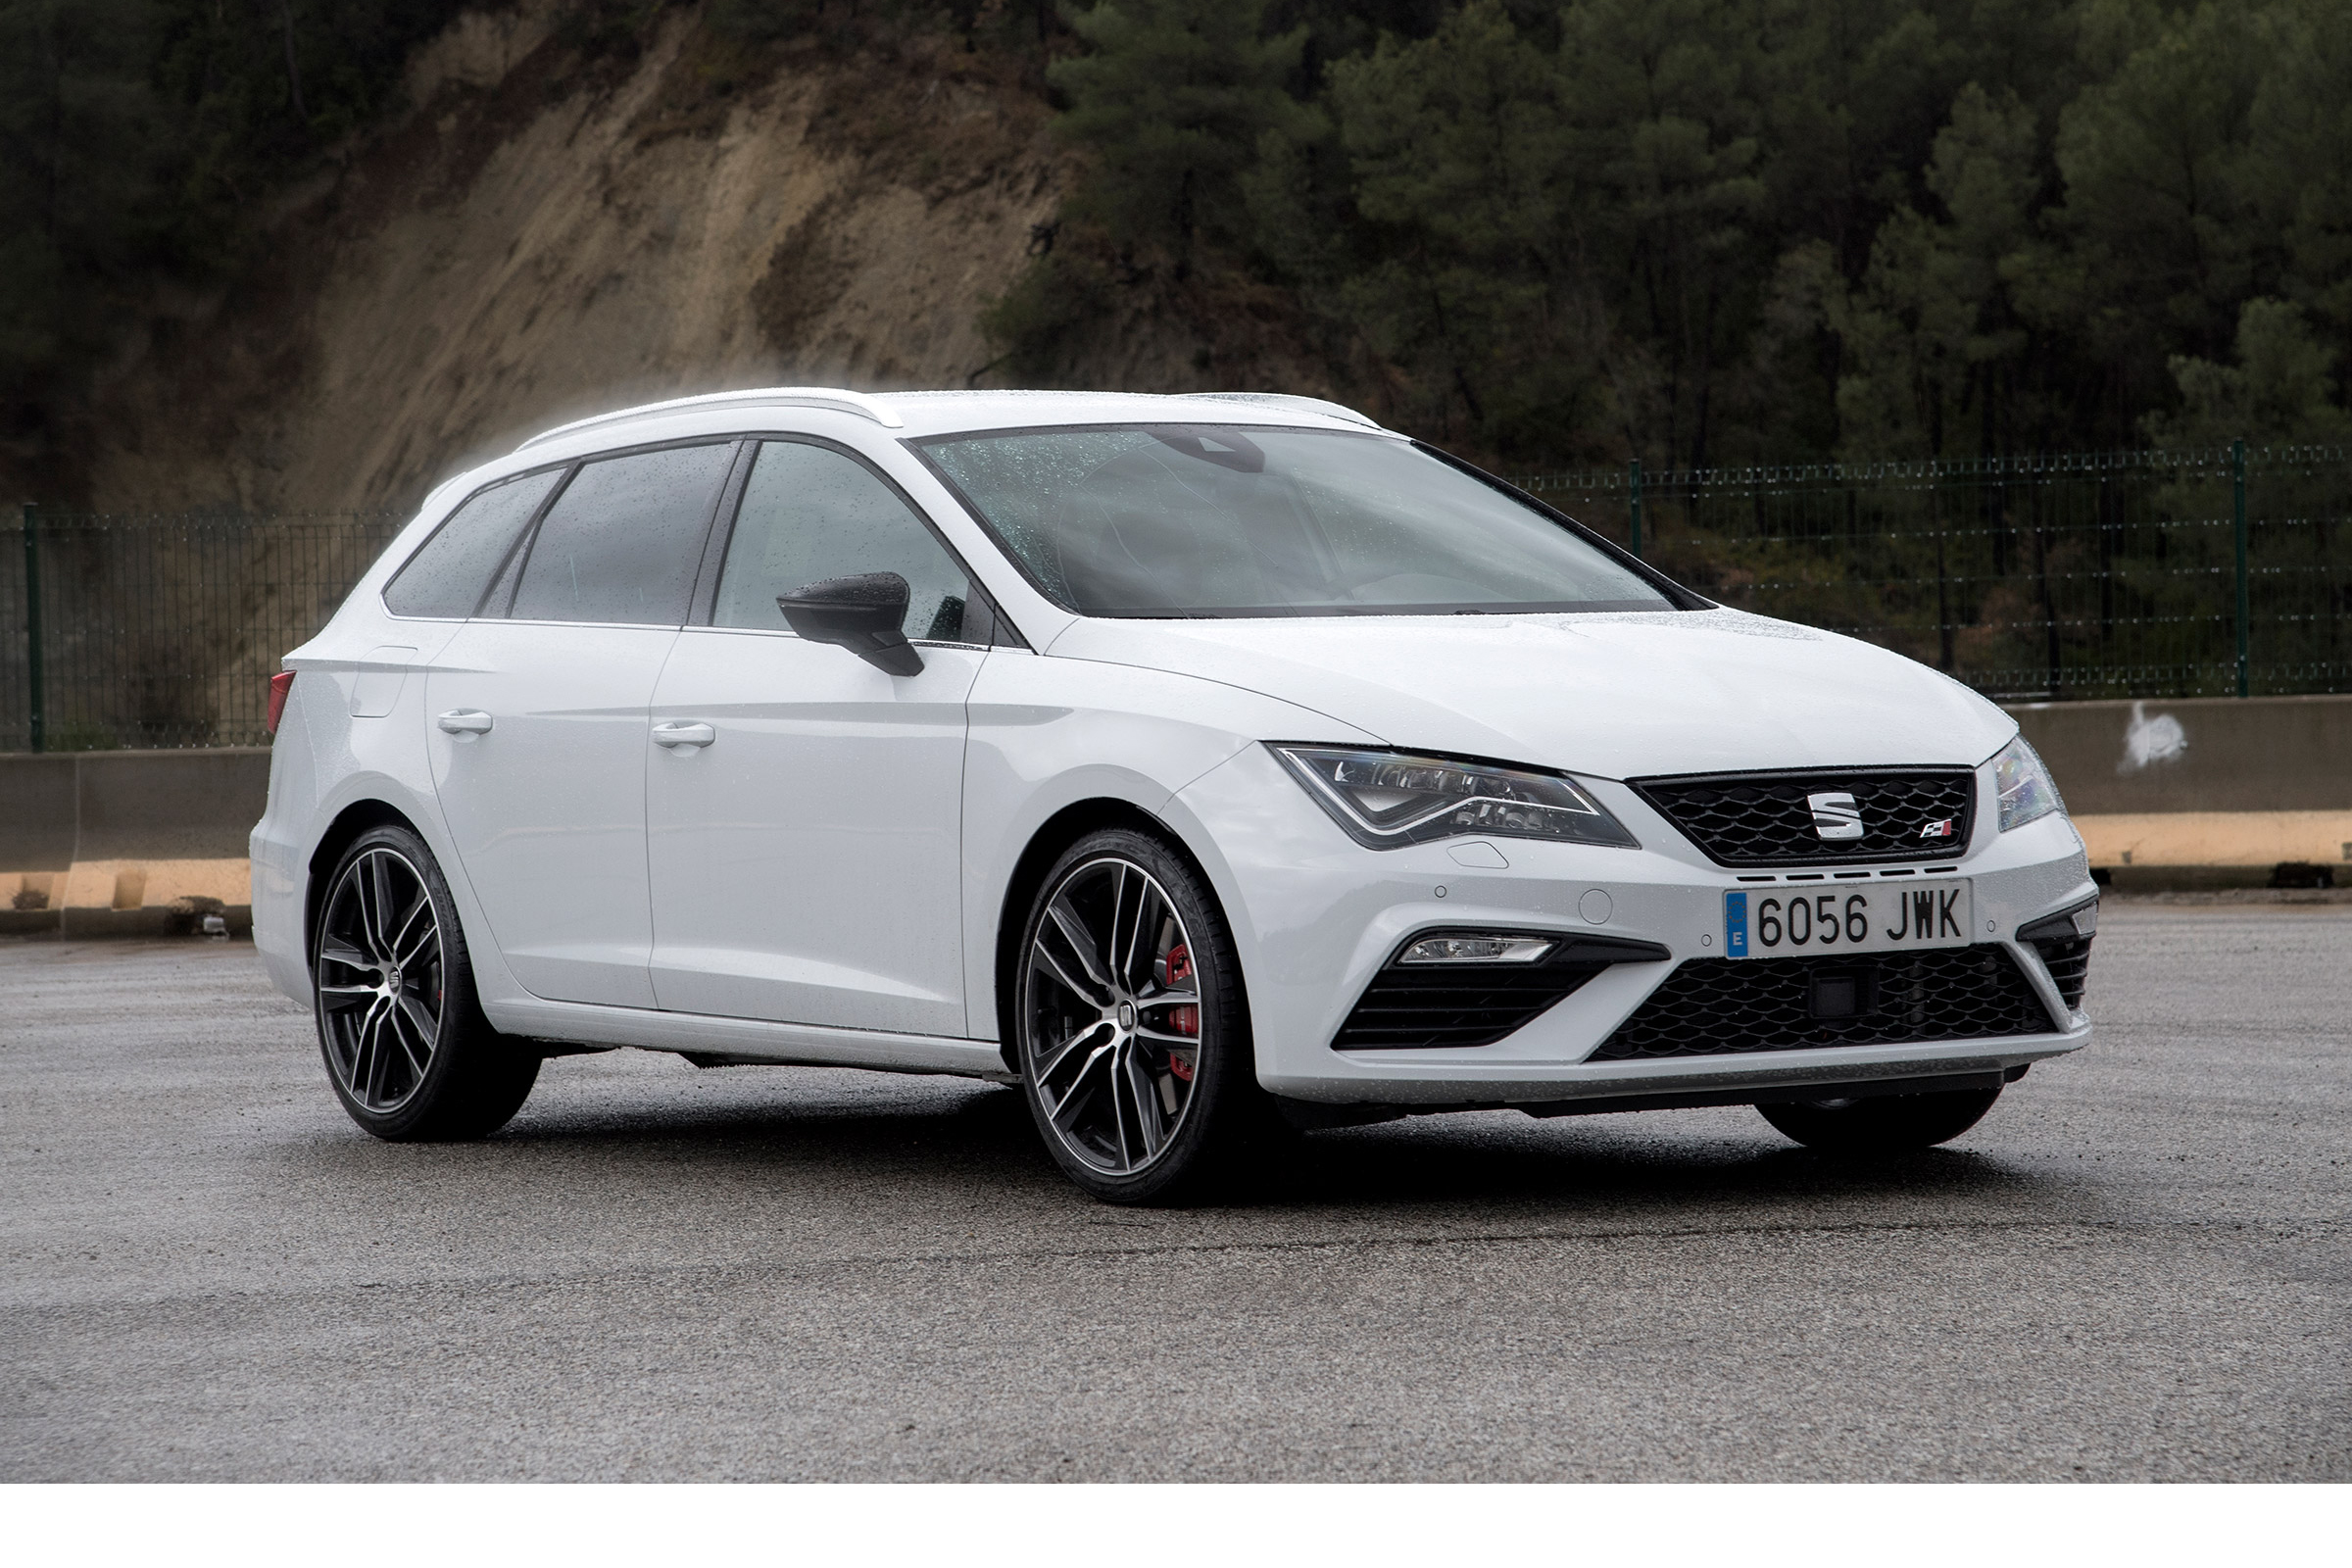 seat leon st cupra 300 4drive review hot estate offers big boot and four wheel drive evo. Black Bedroom Furniture Sets. Home Design Ideas